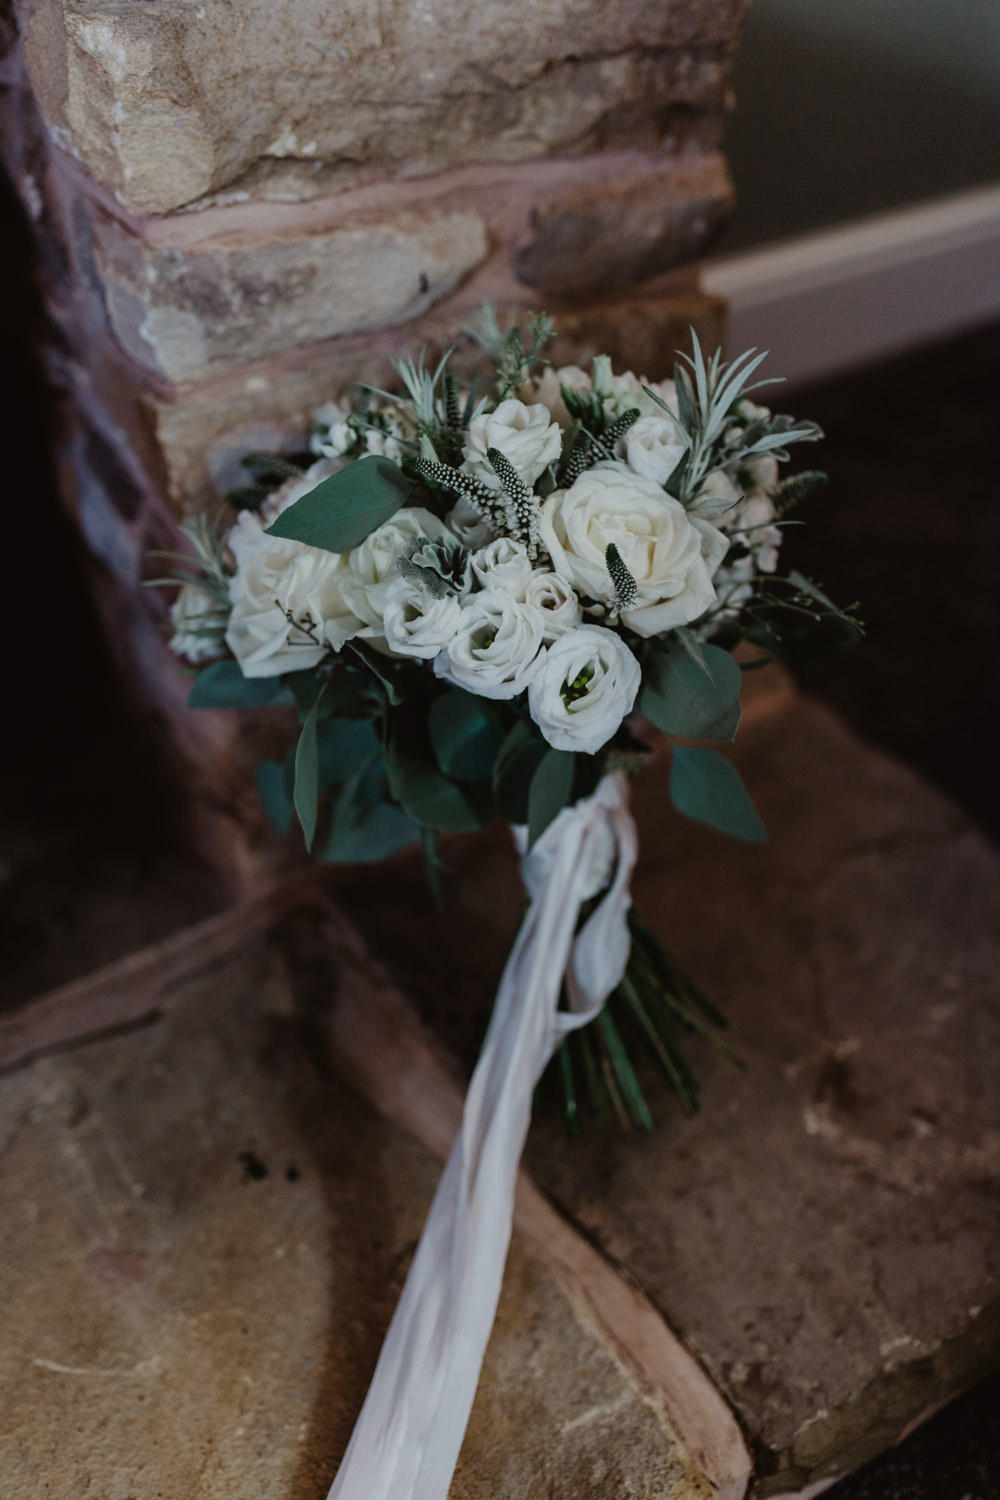 Bride Bridal Bouquet White Flowers Peony Rose Rosemary White Ribbon Hobbit Hill Wedding Stevie Jay Photography